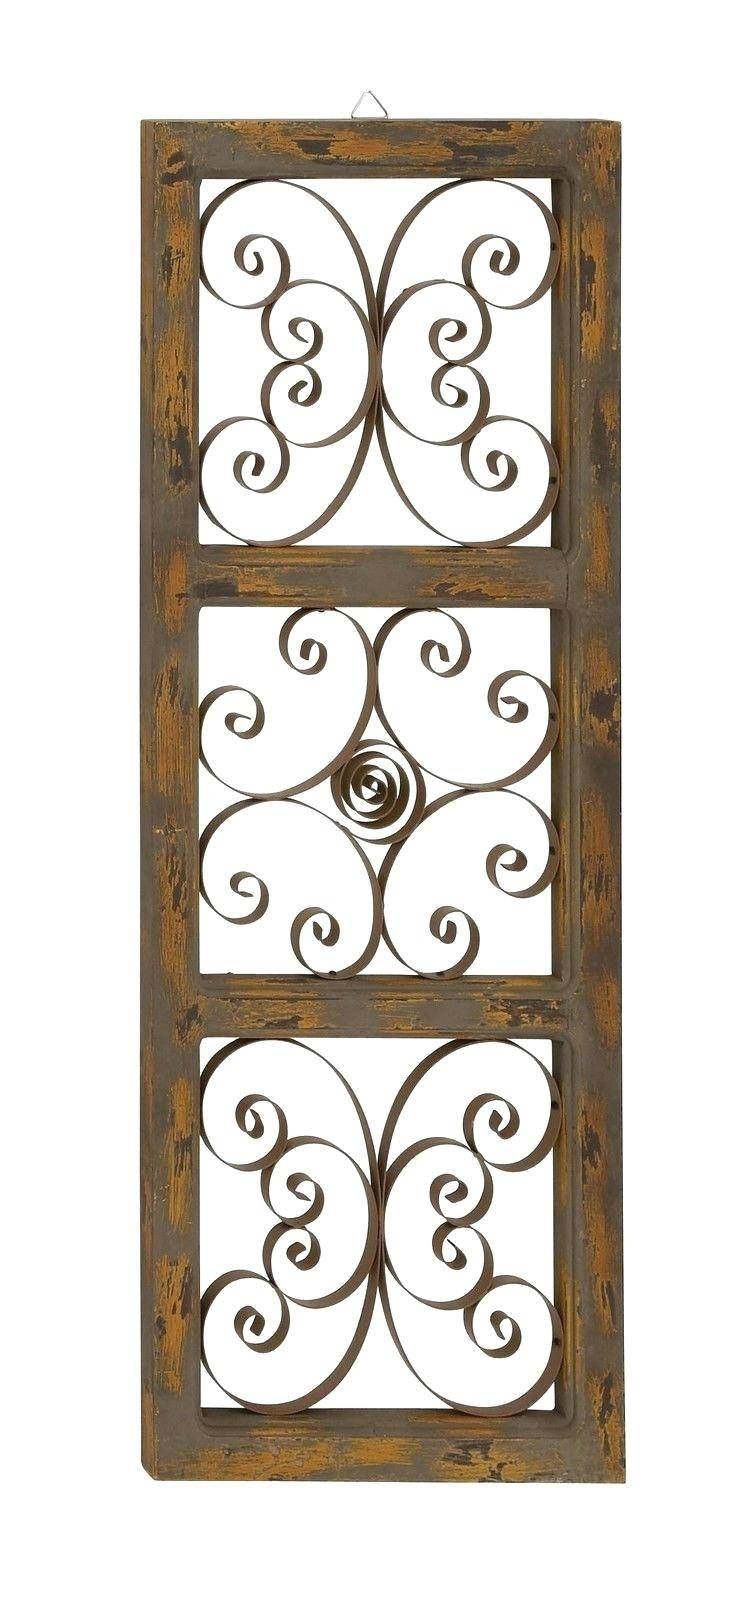 Wall Decor : Chic Large Metal Wood Wall Panel Distressed Wood And Within 2017 Iron Gate Wall Art (View 17 of 25)